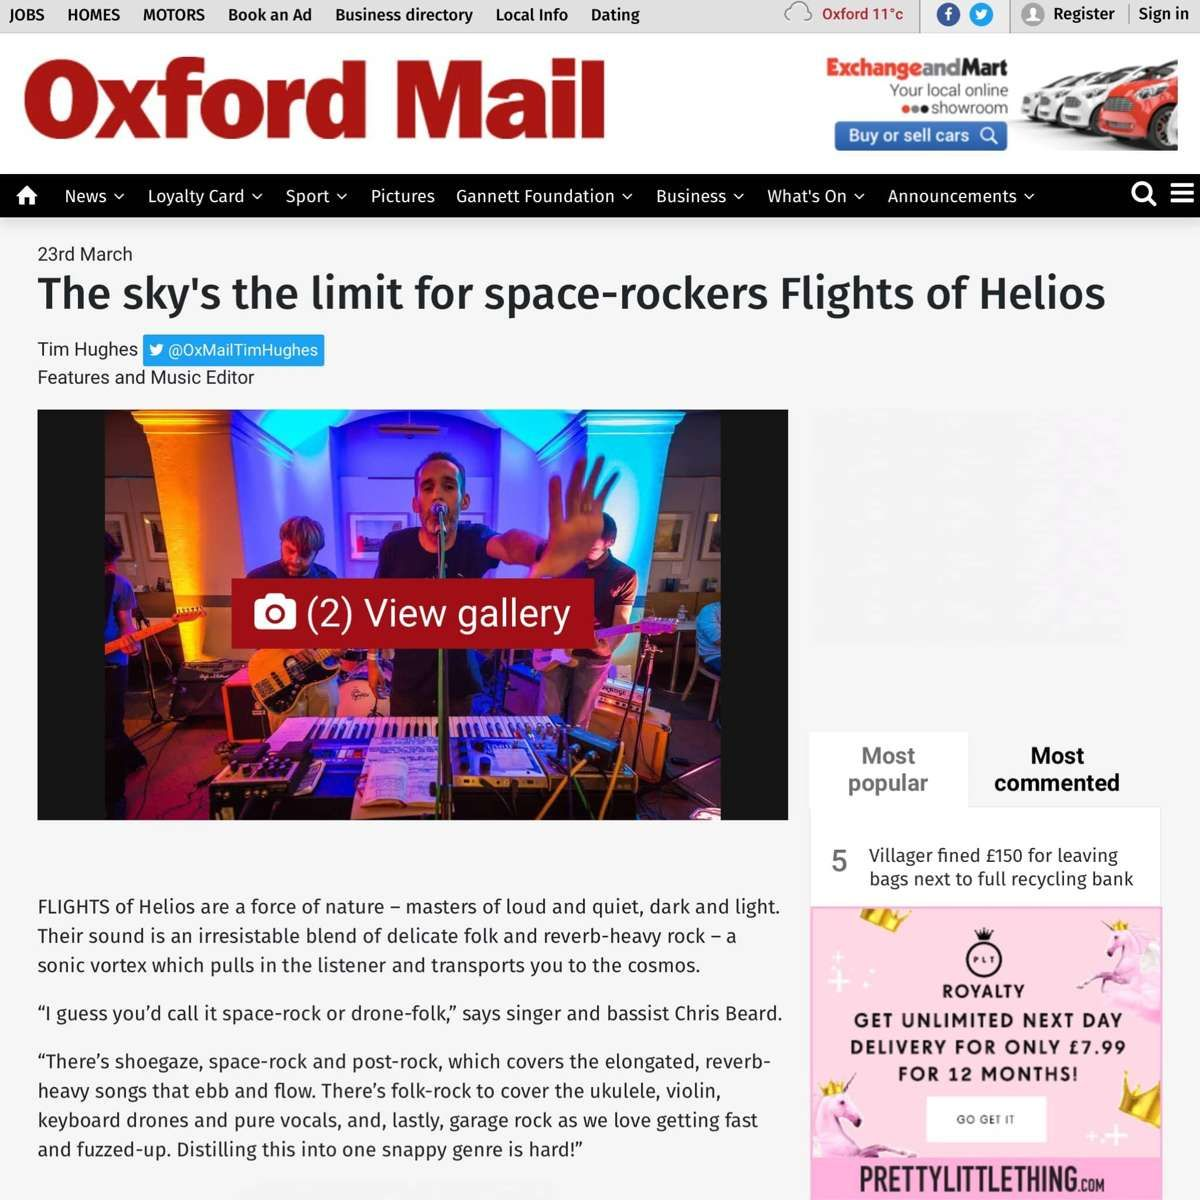 The sky's the limit for space-rockers Flights of Helios